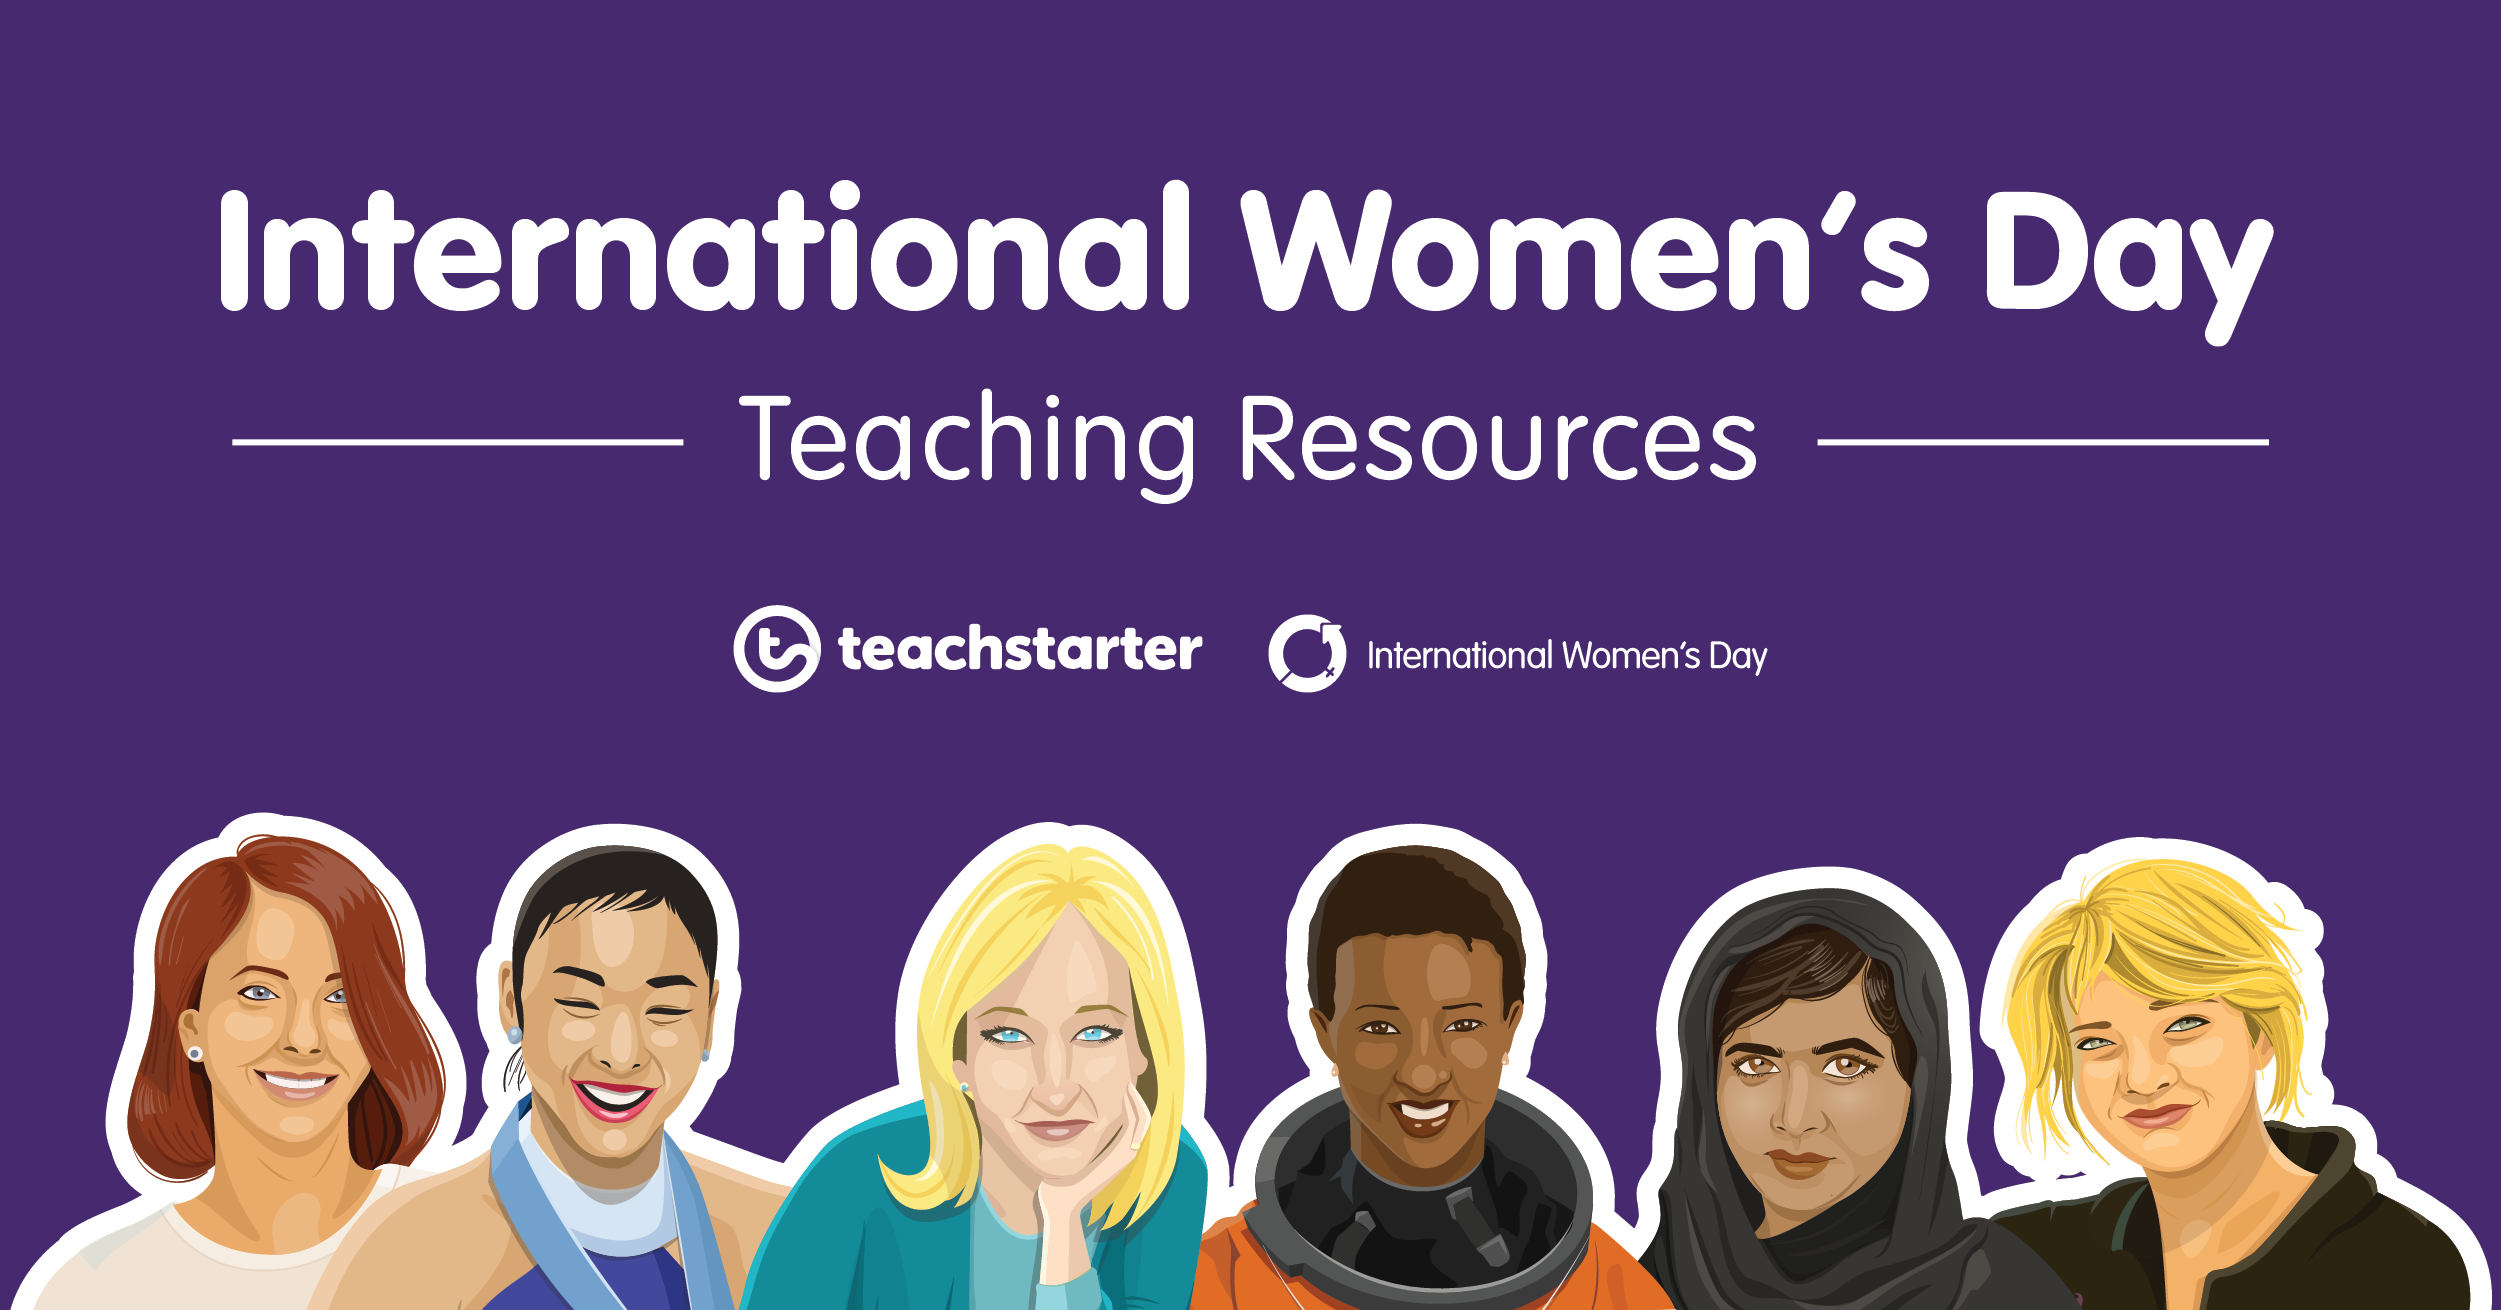 International Women's Day teaching resource collection